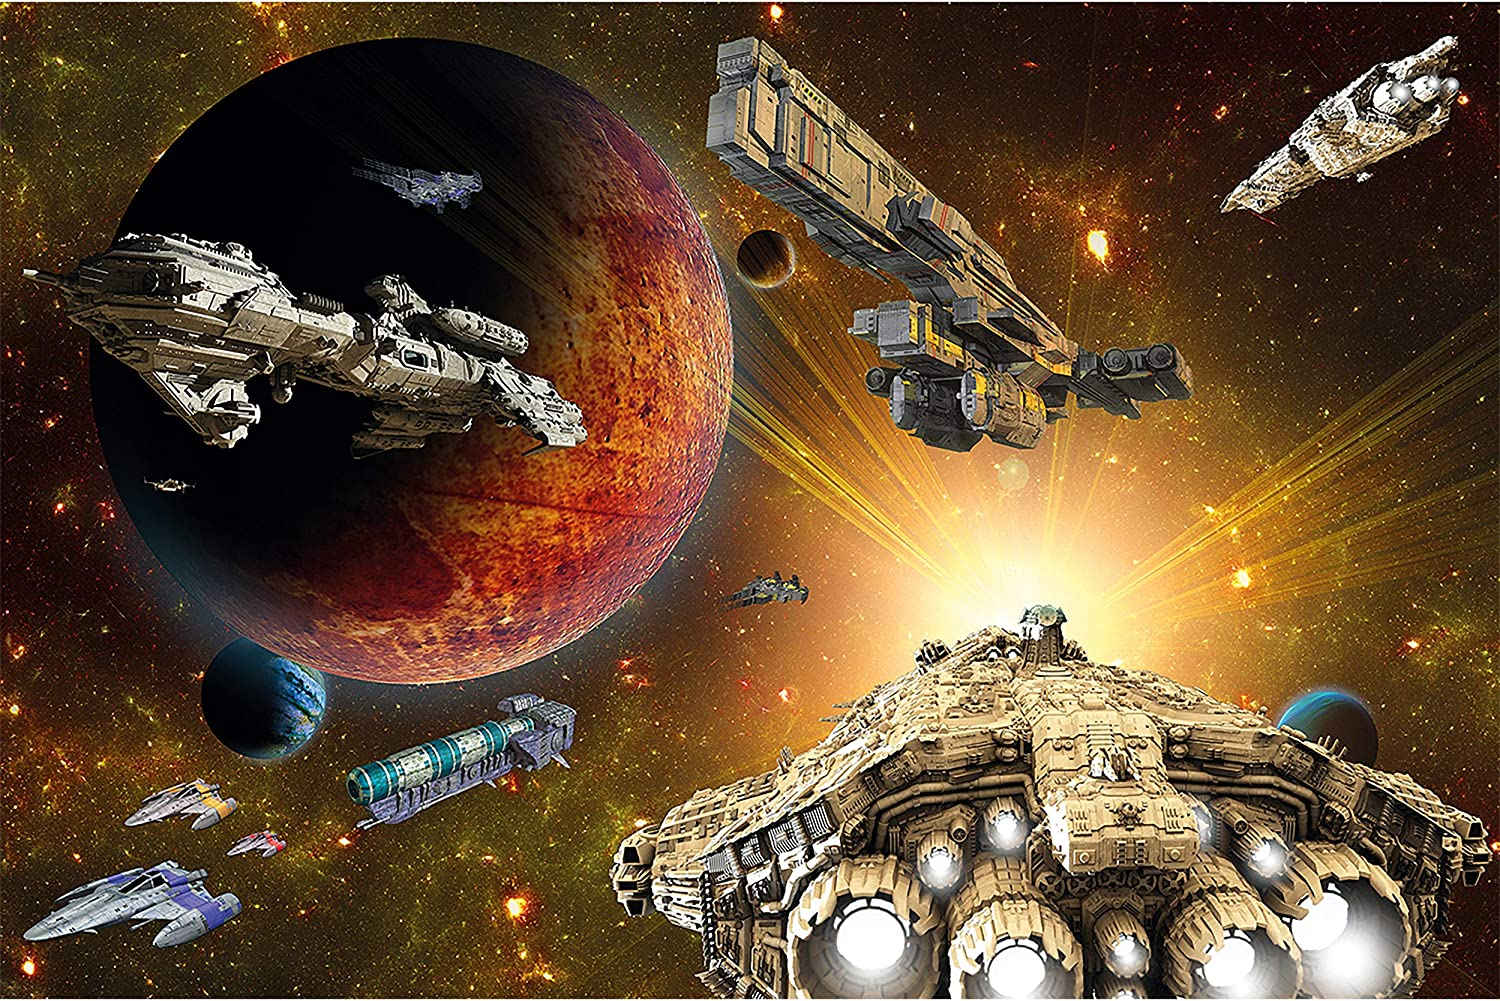 GREAT ART Poster – Galaxy Adventure – Picture Decoration Space Flight Mission Outer Space Shuttle Galactic Exploration Spaceship Universe Image Photo Decor Wall Mural (55x39.4in - 140x100cm)